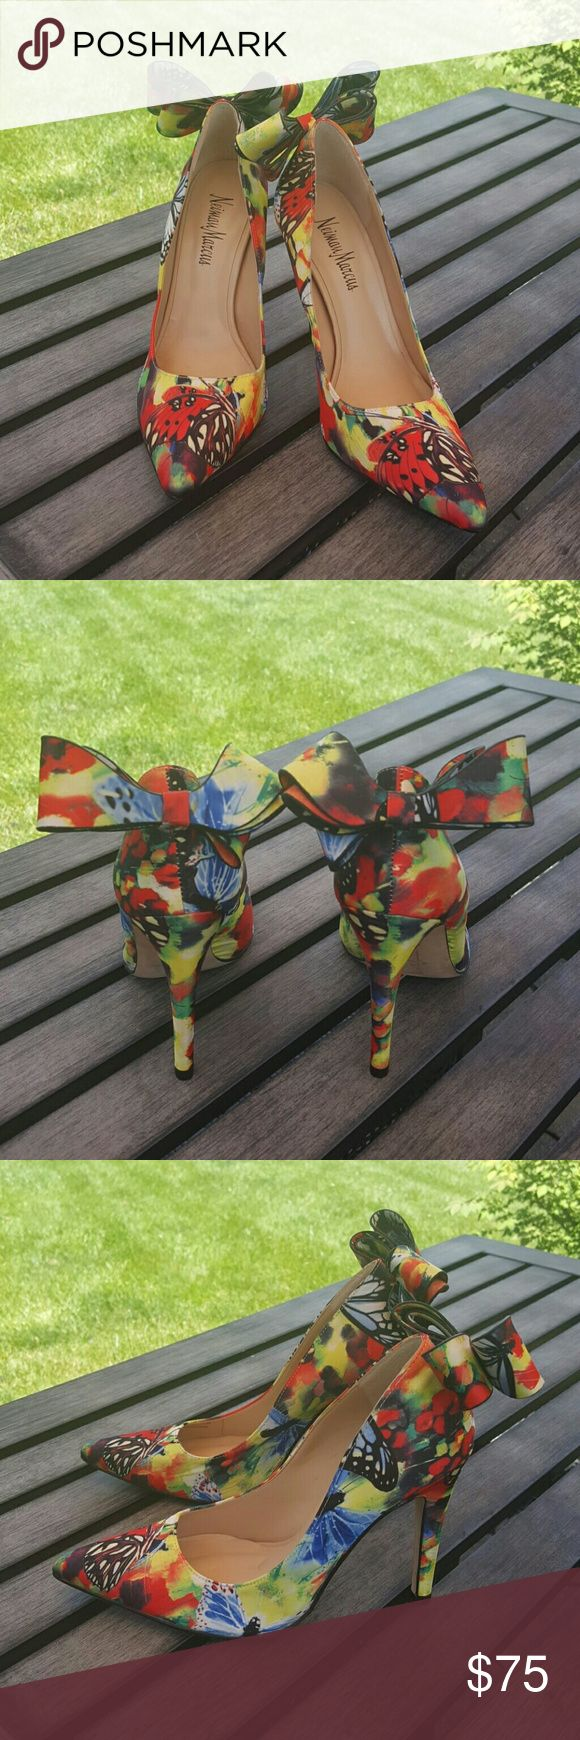 """Rare NEIMAN MARCUS Butterfly Heels These gorgeous Butterfly heels are by Neiman Marcus.  3D bow on back, and heel measures approx 4"""". Size 5-1/2""""M Neiman Marcus Shoes Heels"""